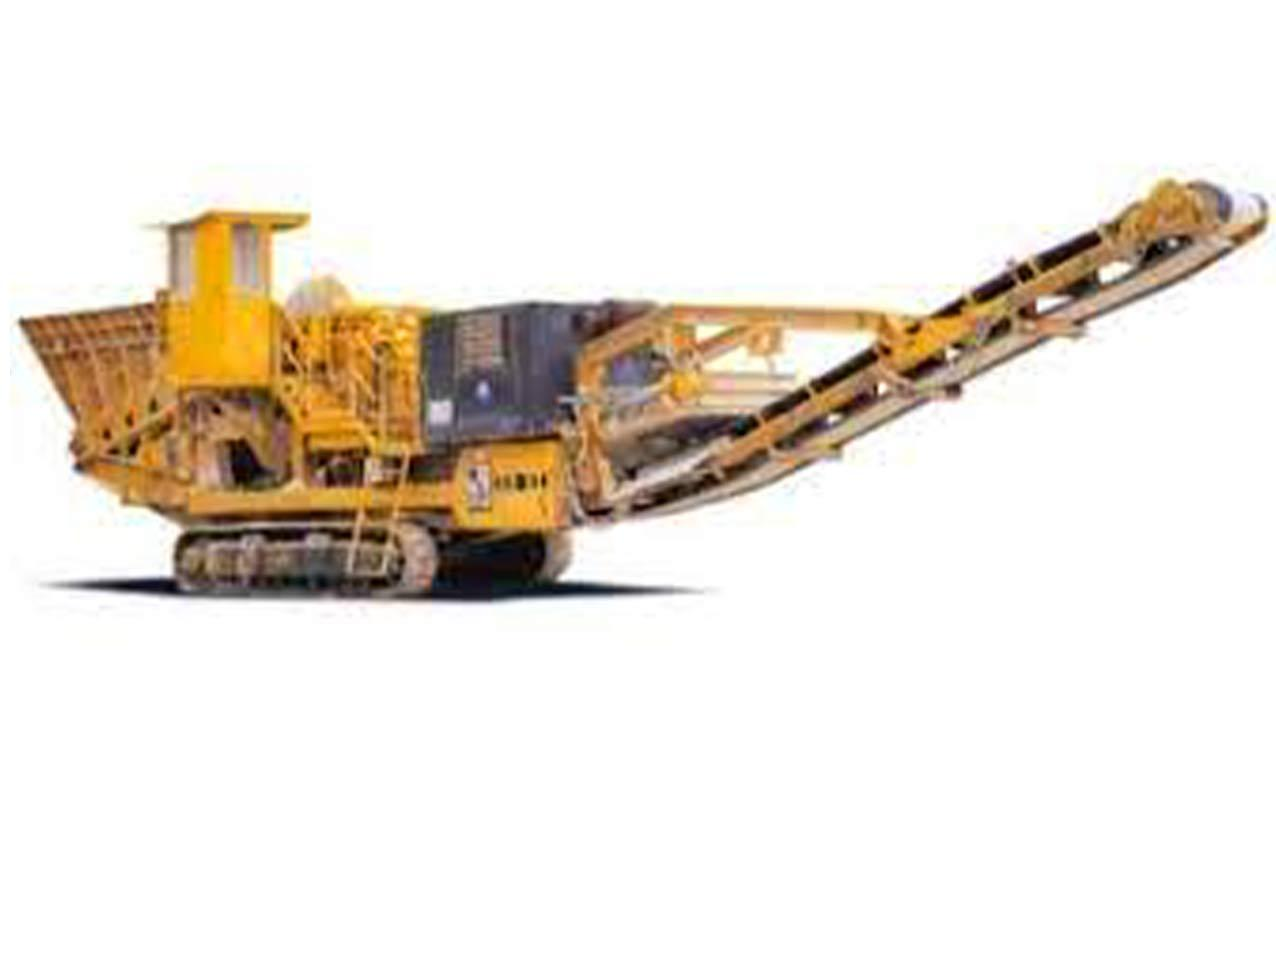 HARTL PC 1610 IG – Crusher with extra Parts